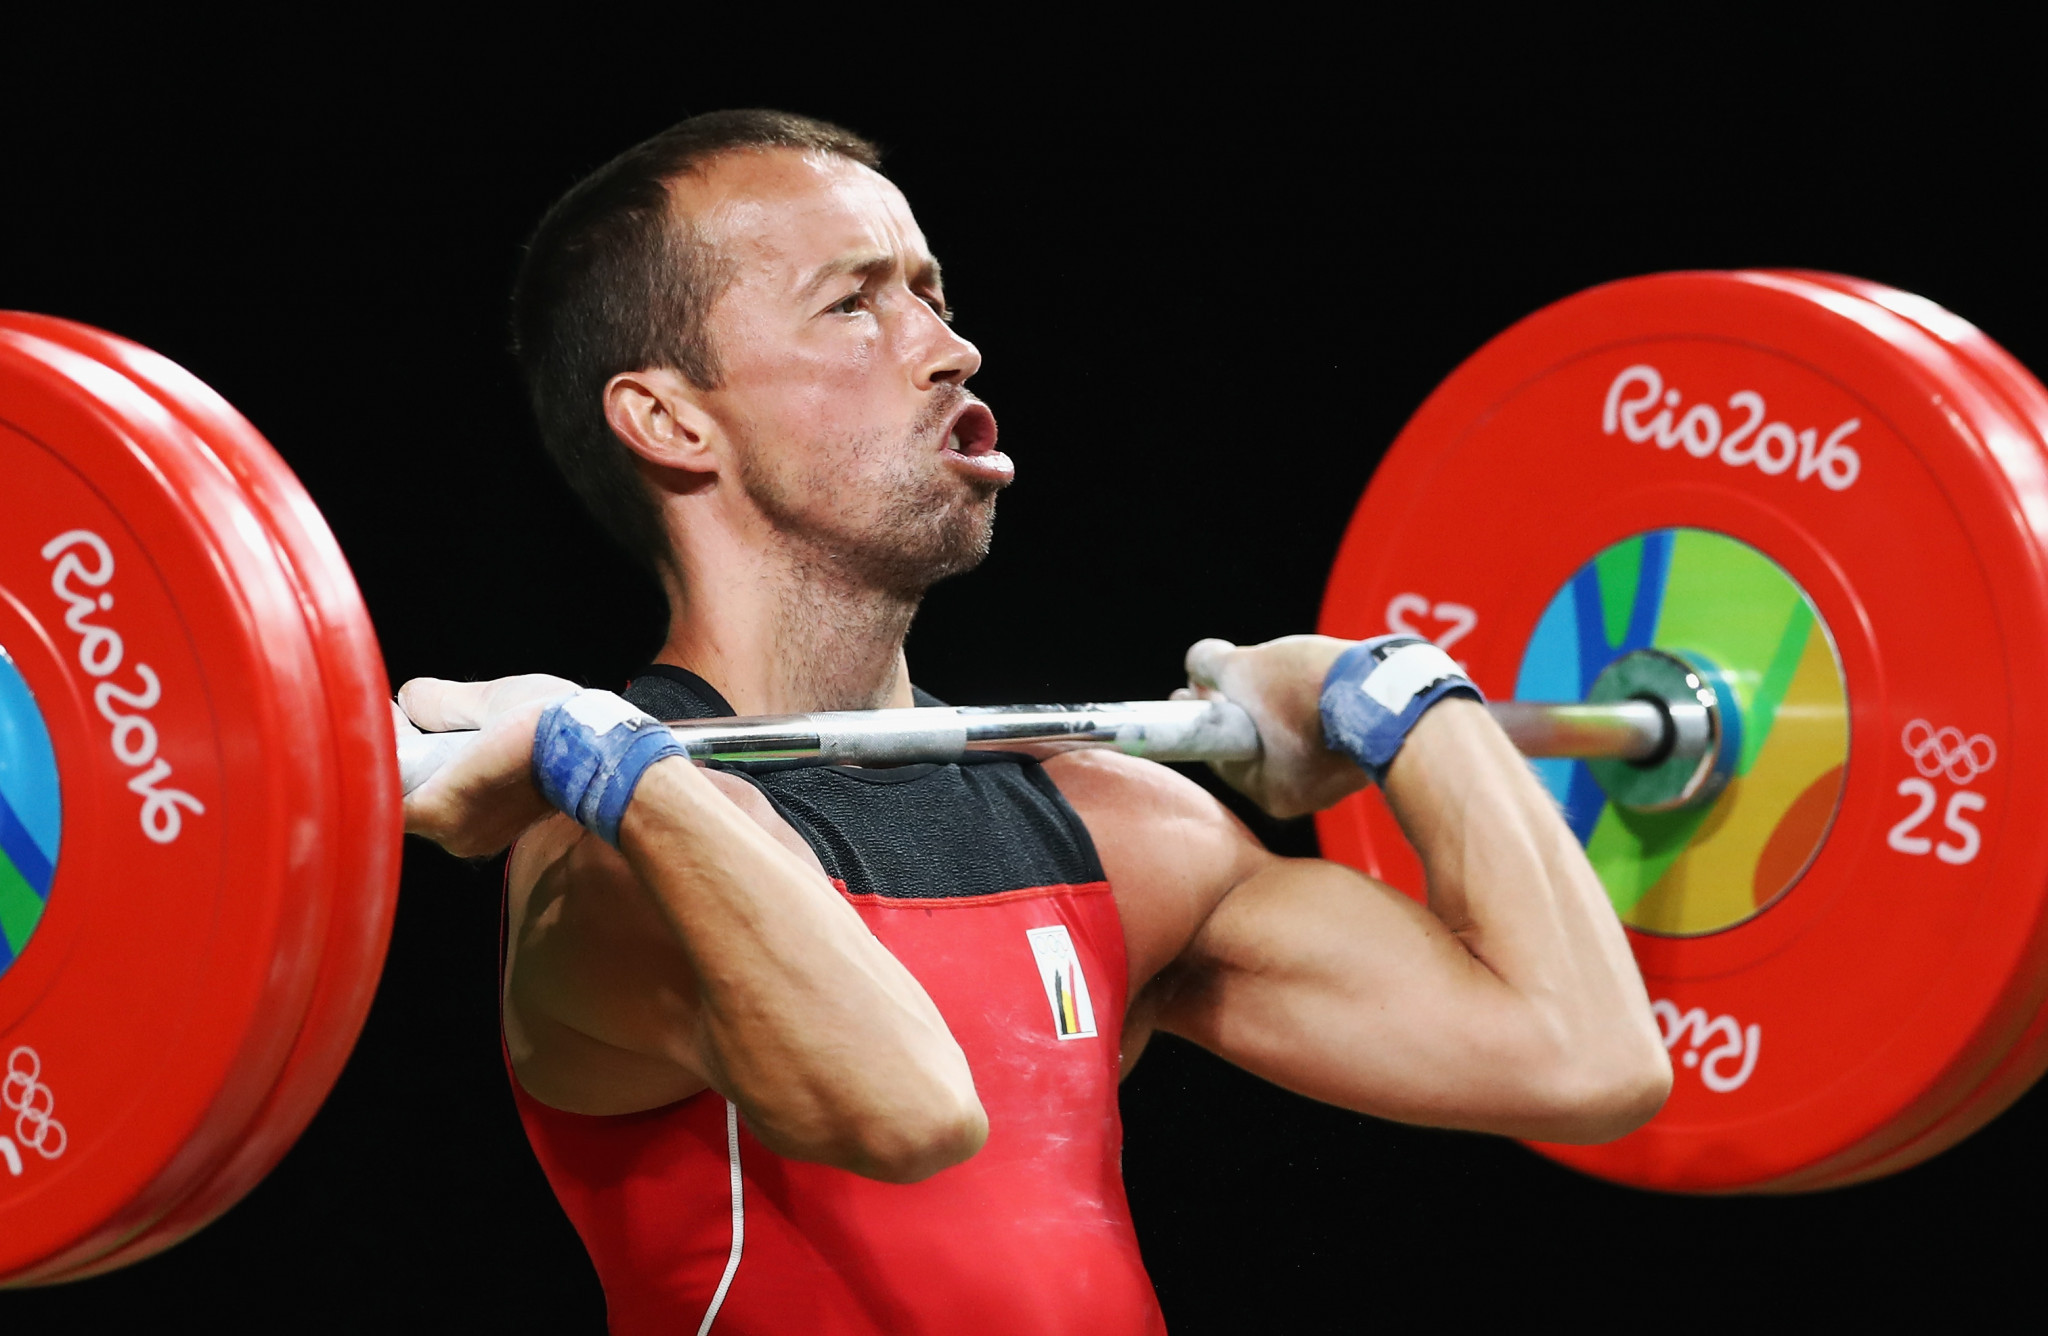 Tom Goegebuer, President of the Belgian Weightlifting Federation, is among those urging the IWF to publish the list of electoral candidates ©Getty Images